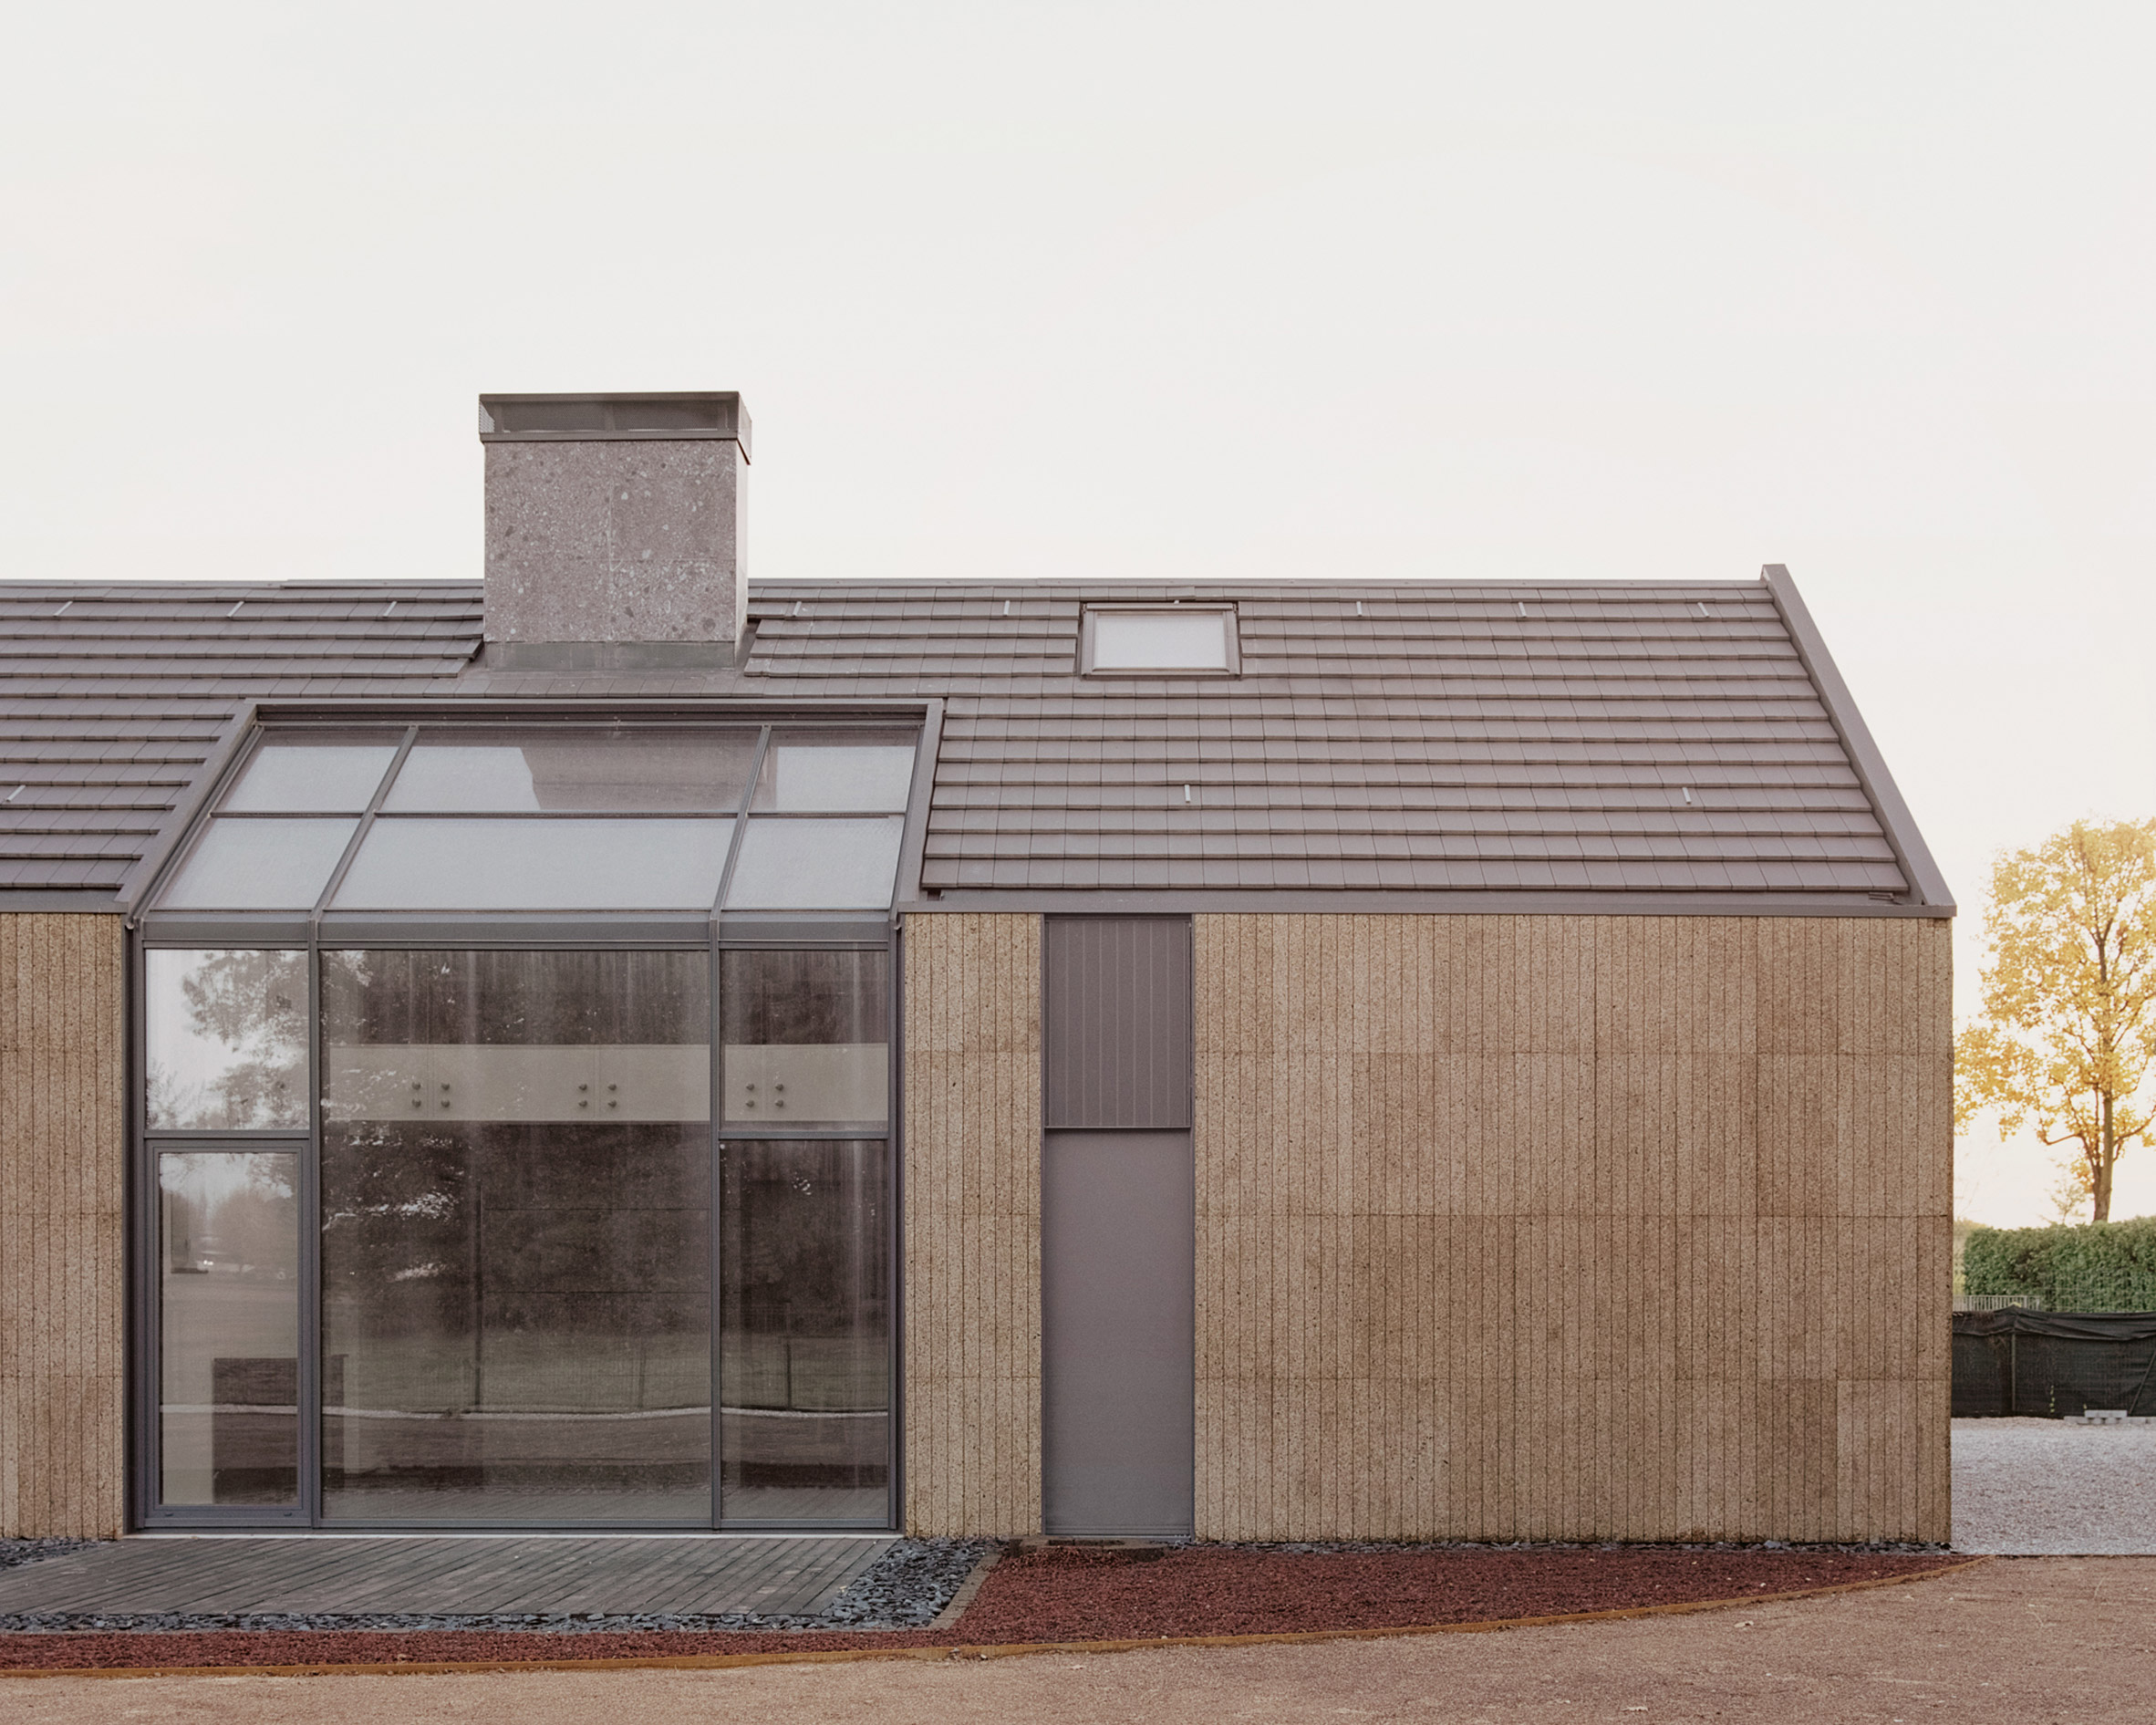 The side elevation of The House of Wood, Straw and Cork by LCA Architetti